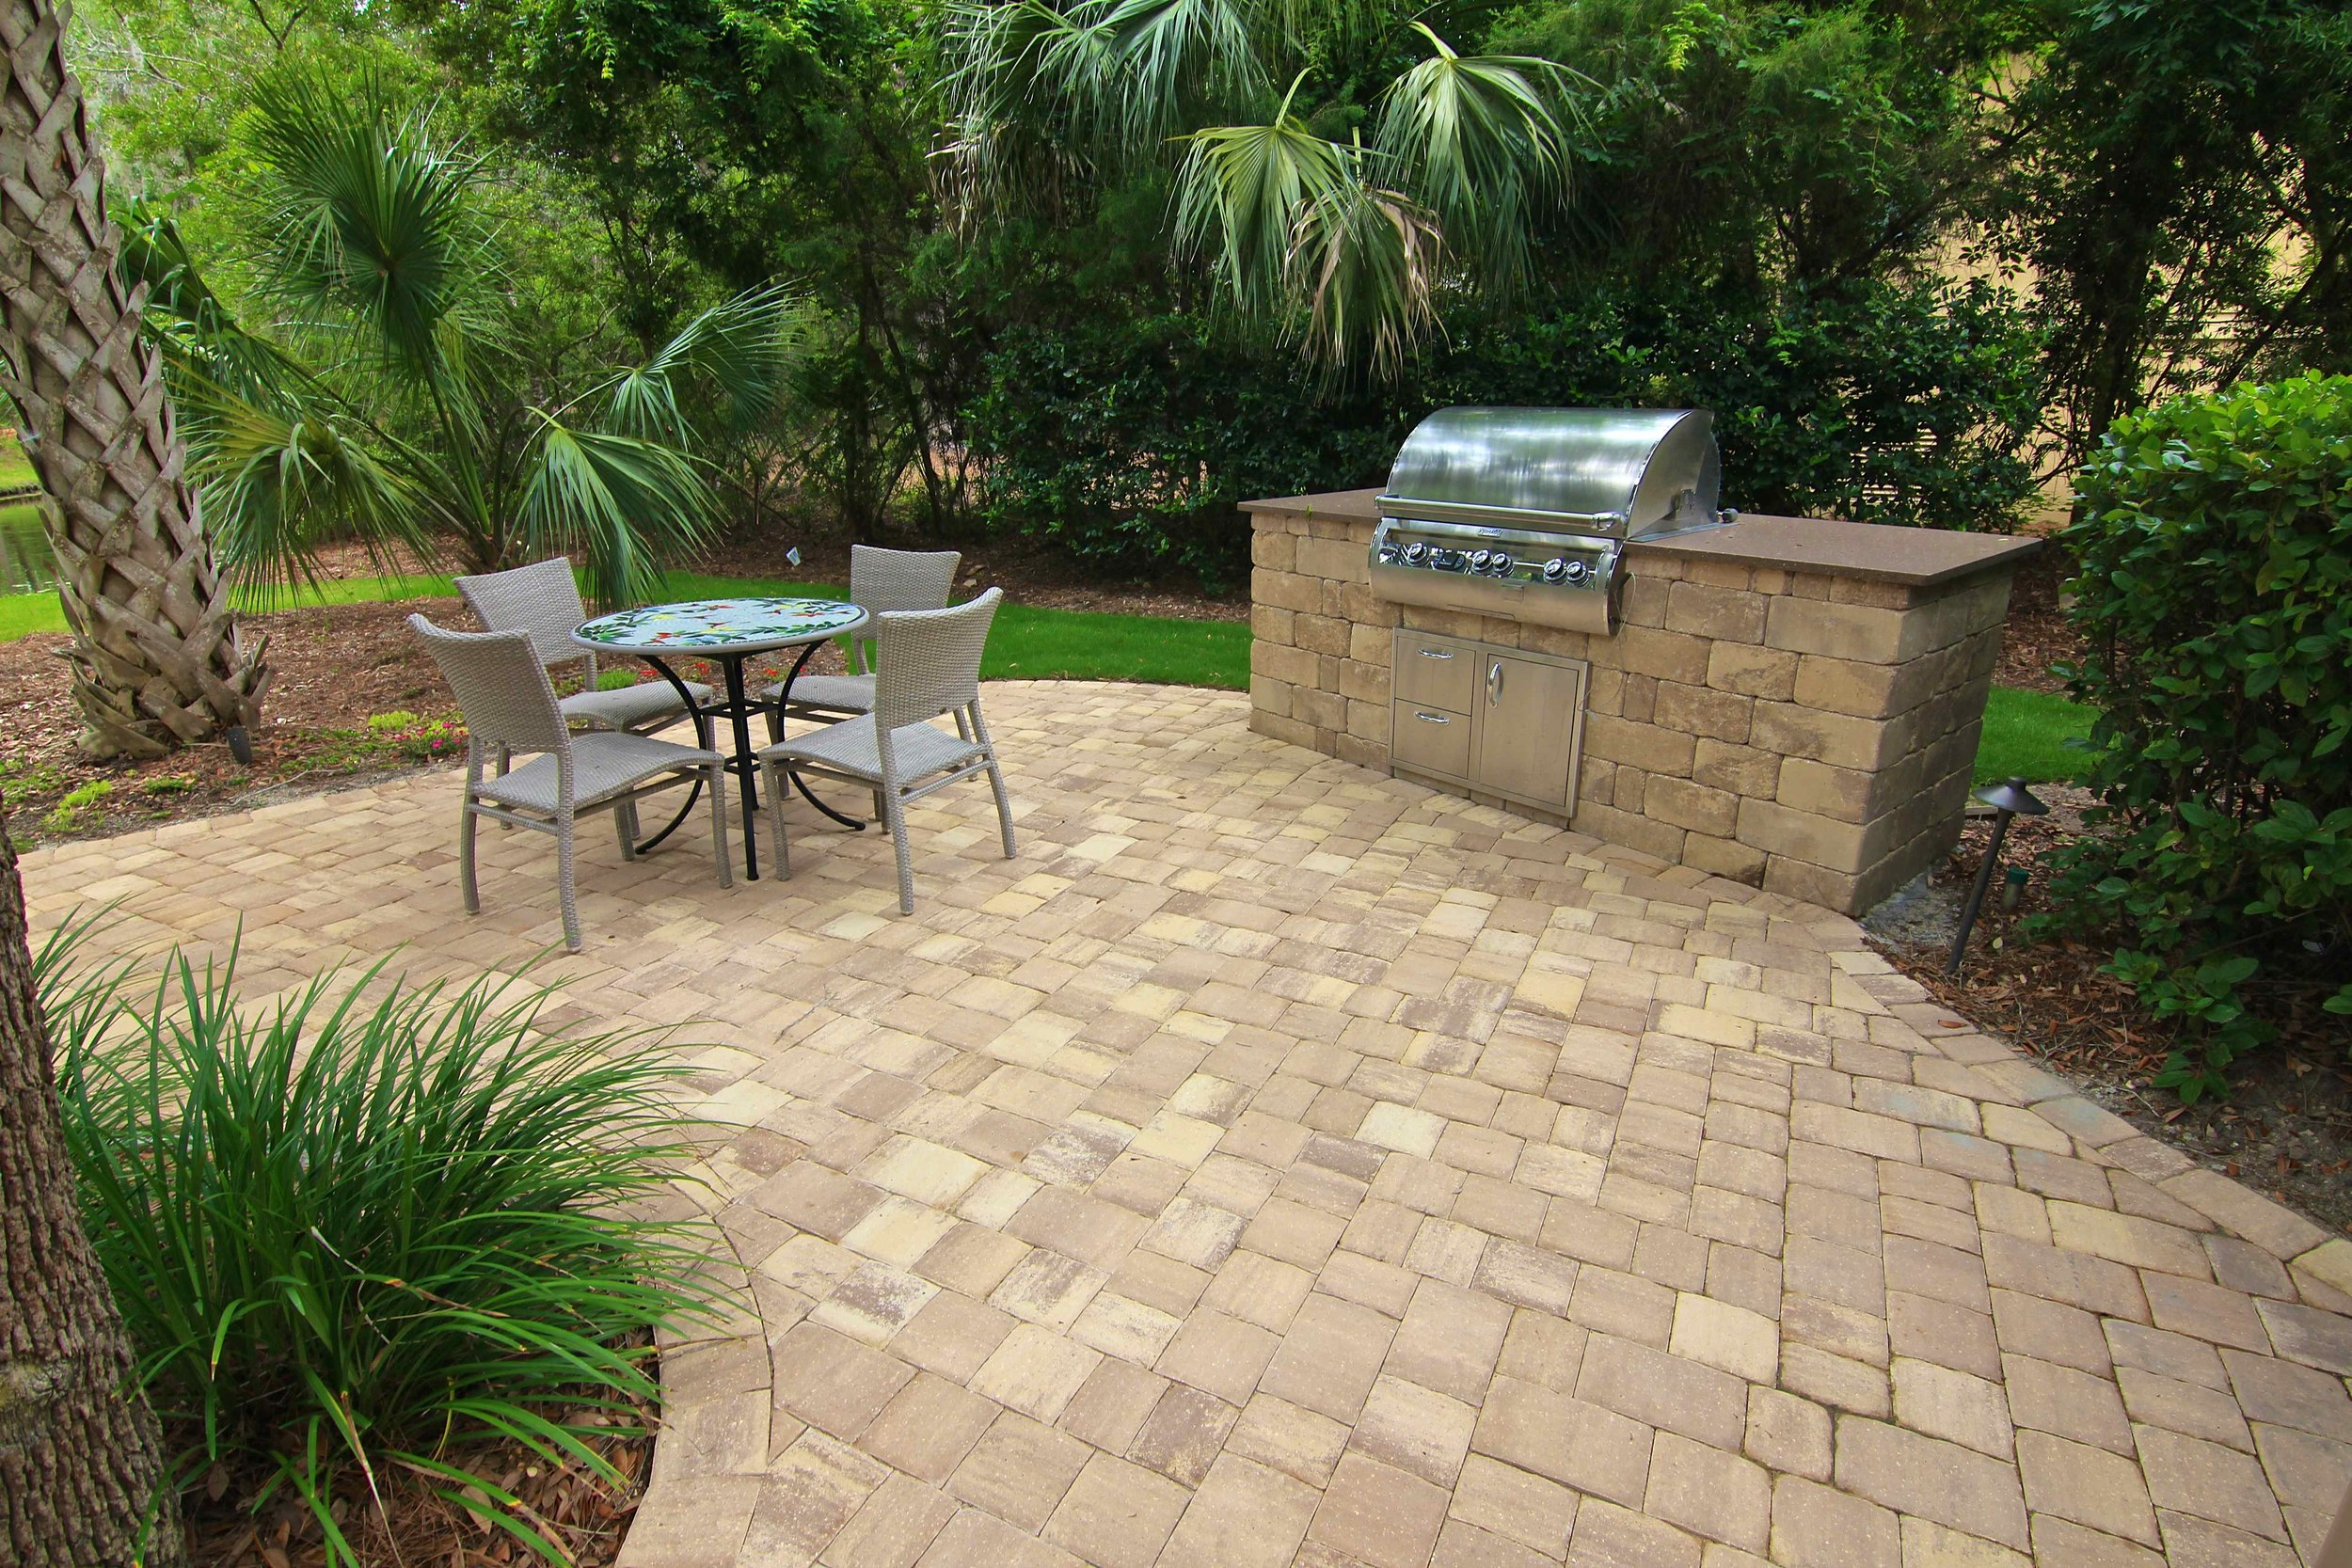 View More Outdoor Kitchen Designs In Our Gallery